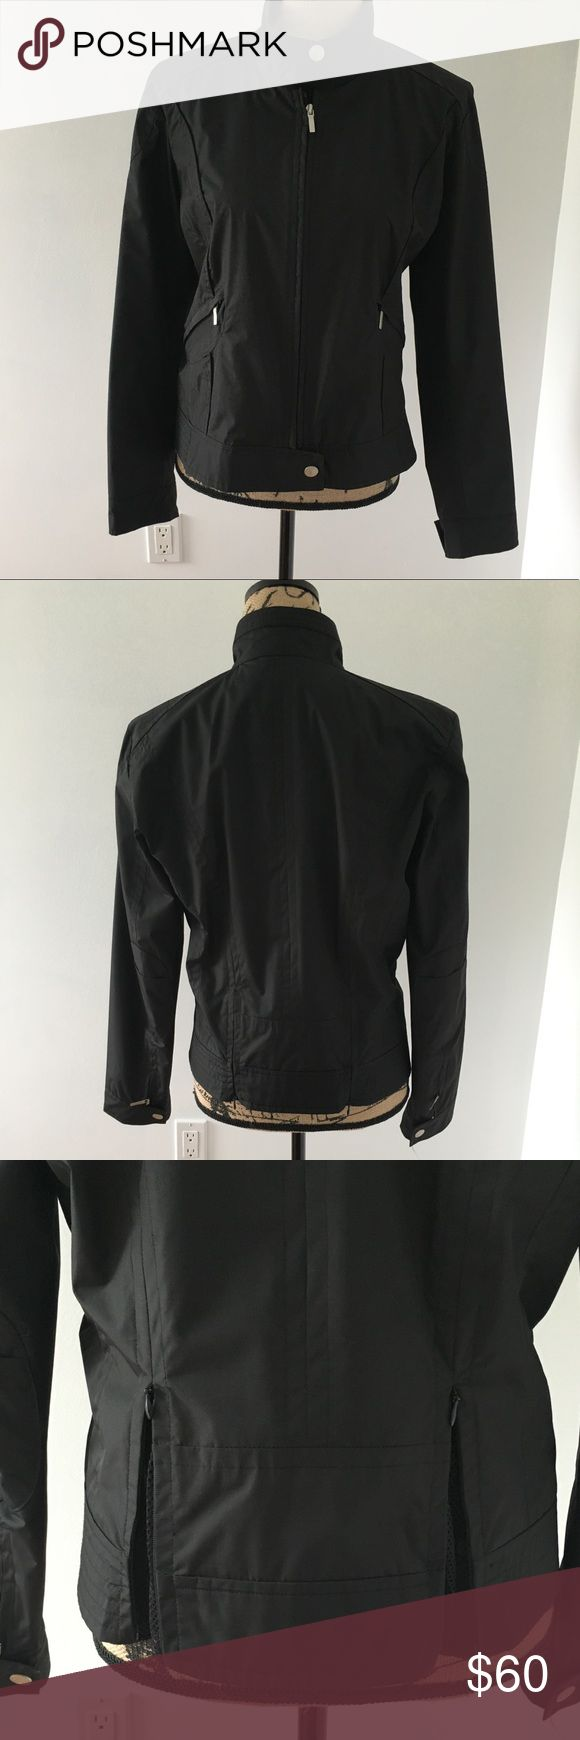 Regent park waxed jacket Waxed jacket in perfect condition. I absolutely love this jacket, Very cool buttons and details. Burberry for exposure Jackets & Coats